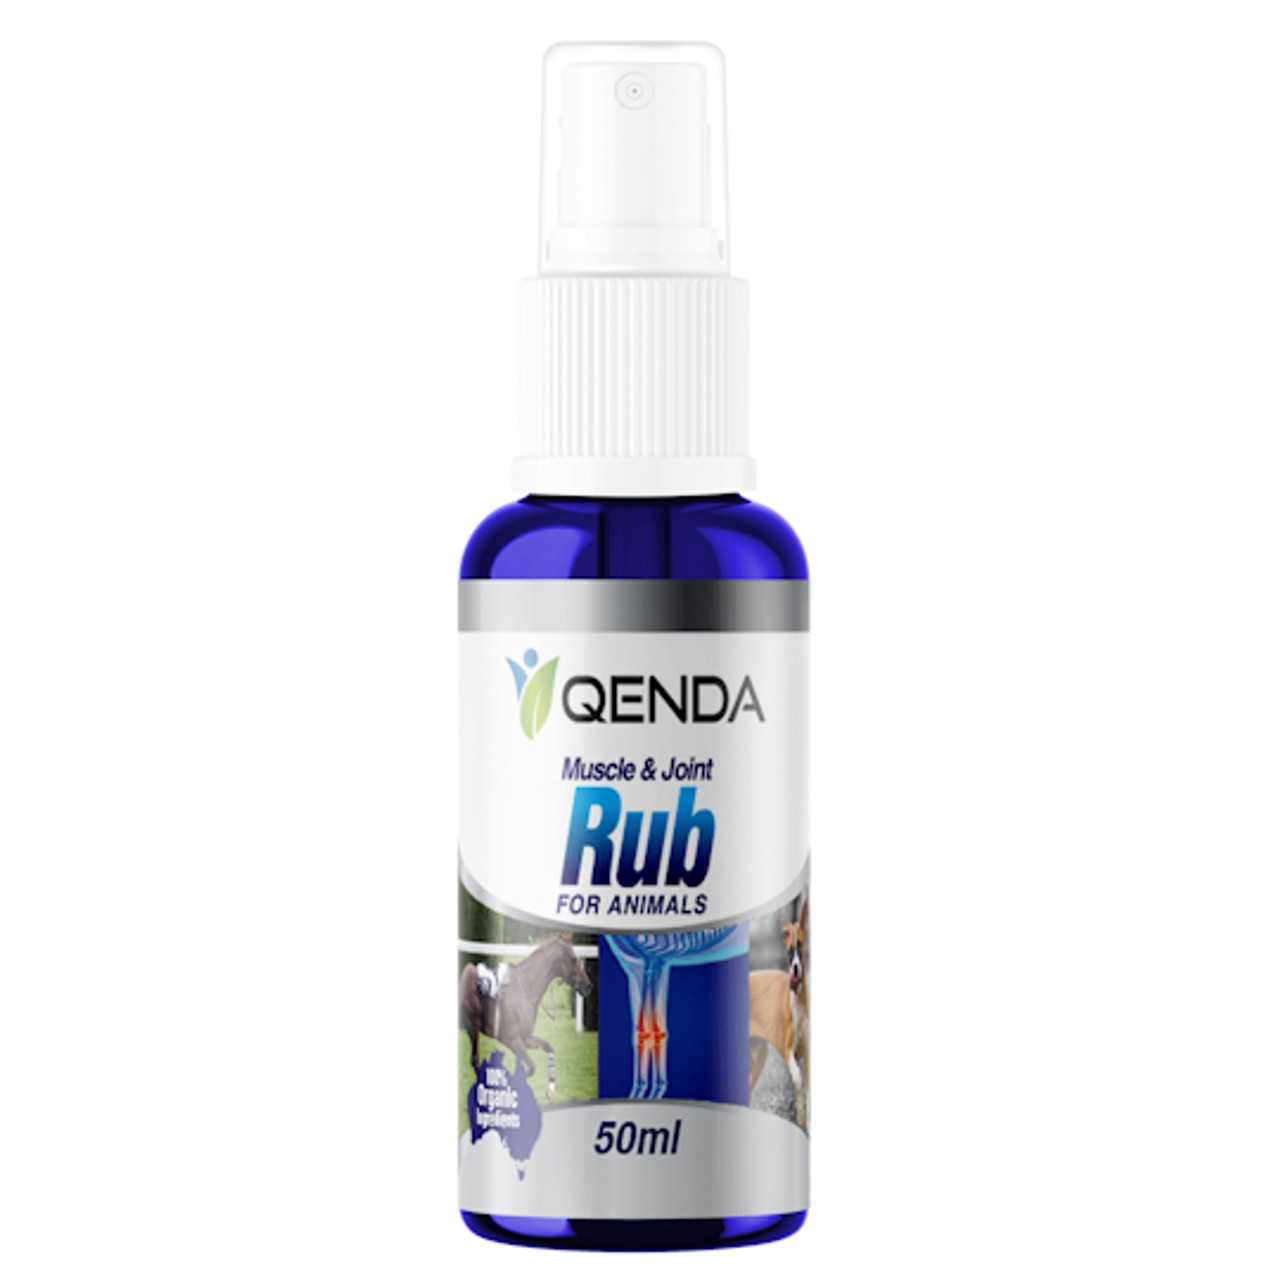 Qenda Muscle & Joint Rub For Animals - 50ml